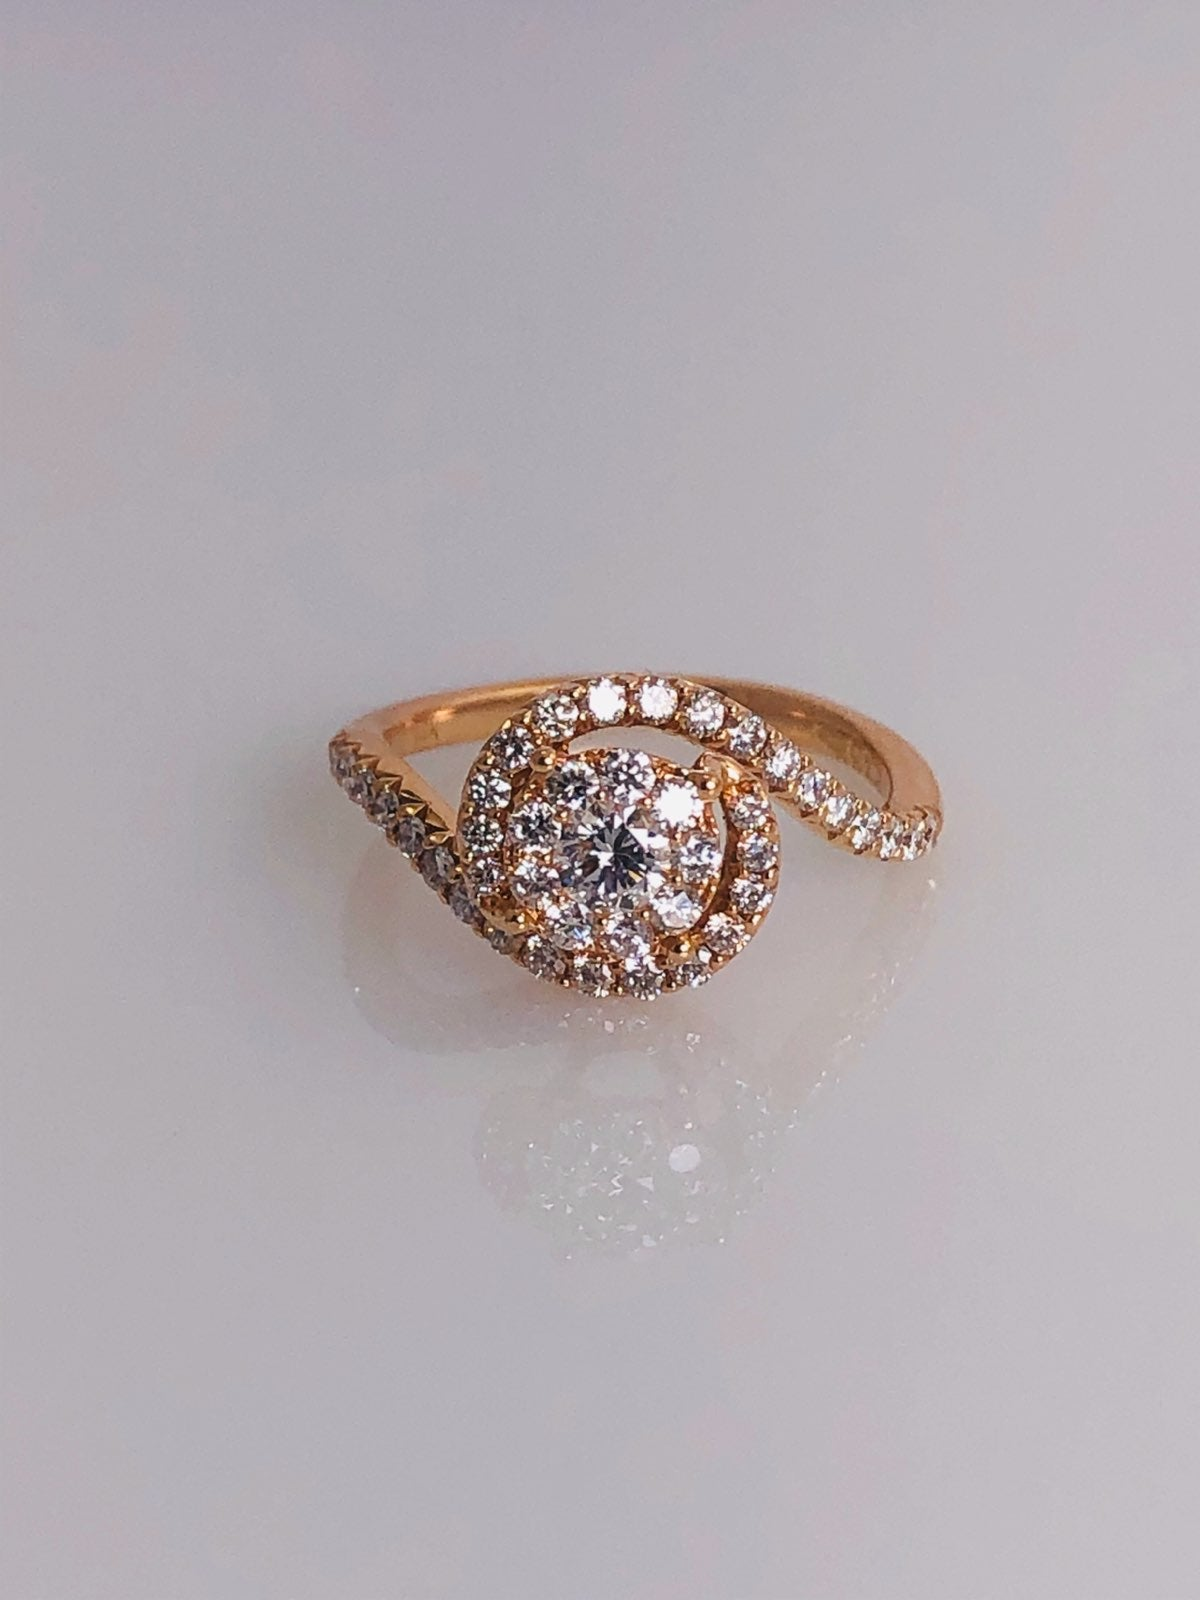 Ross Gold Engagement Ring